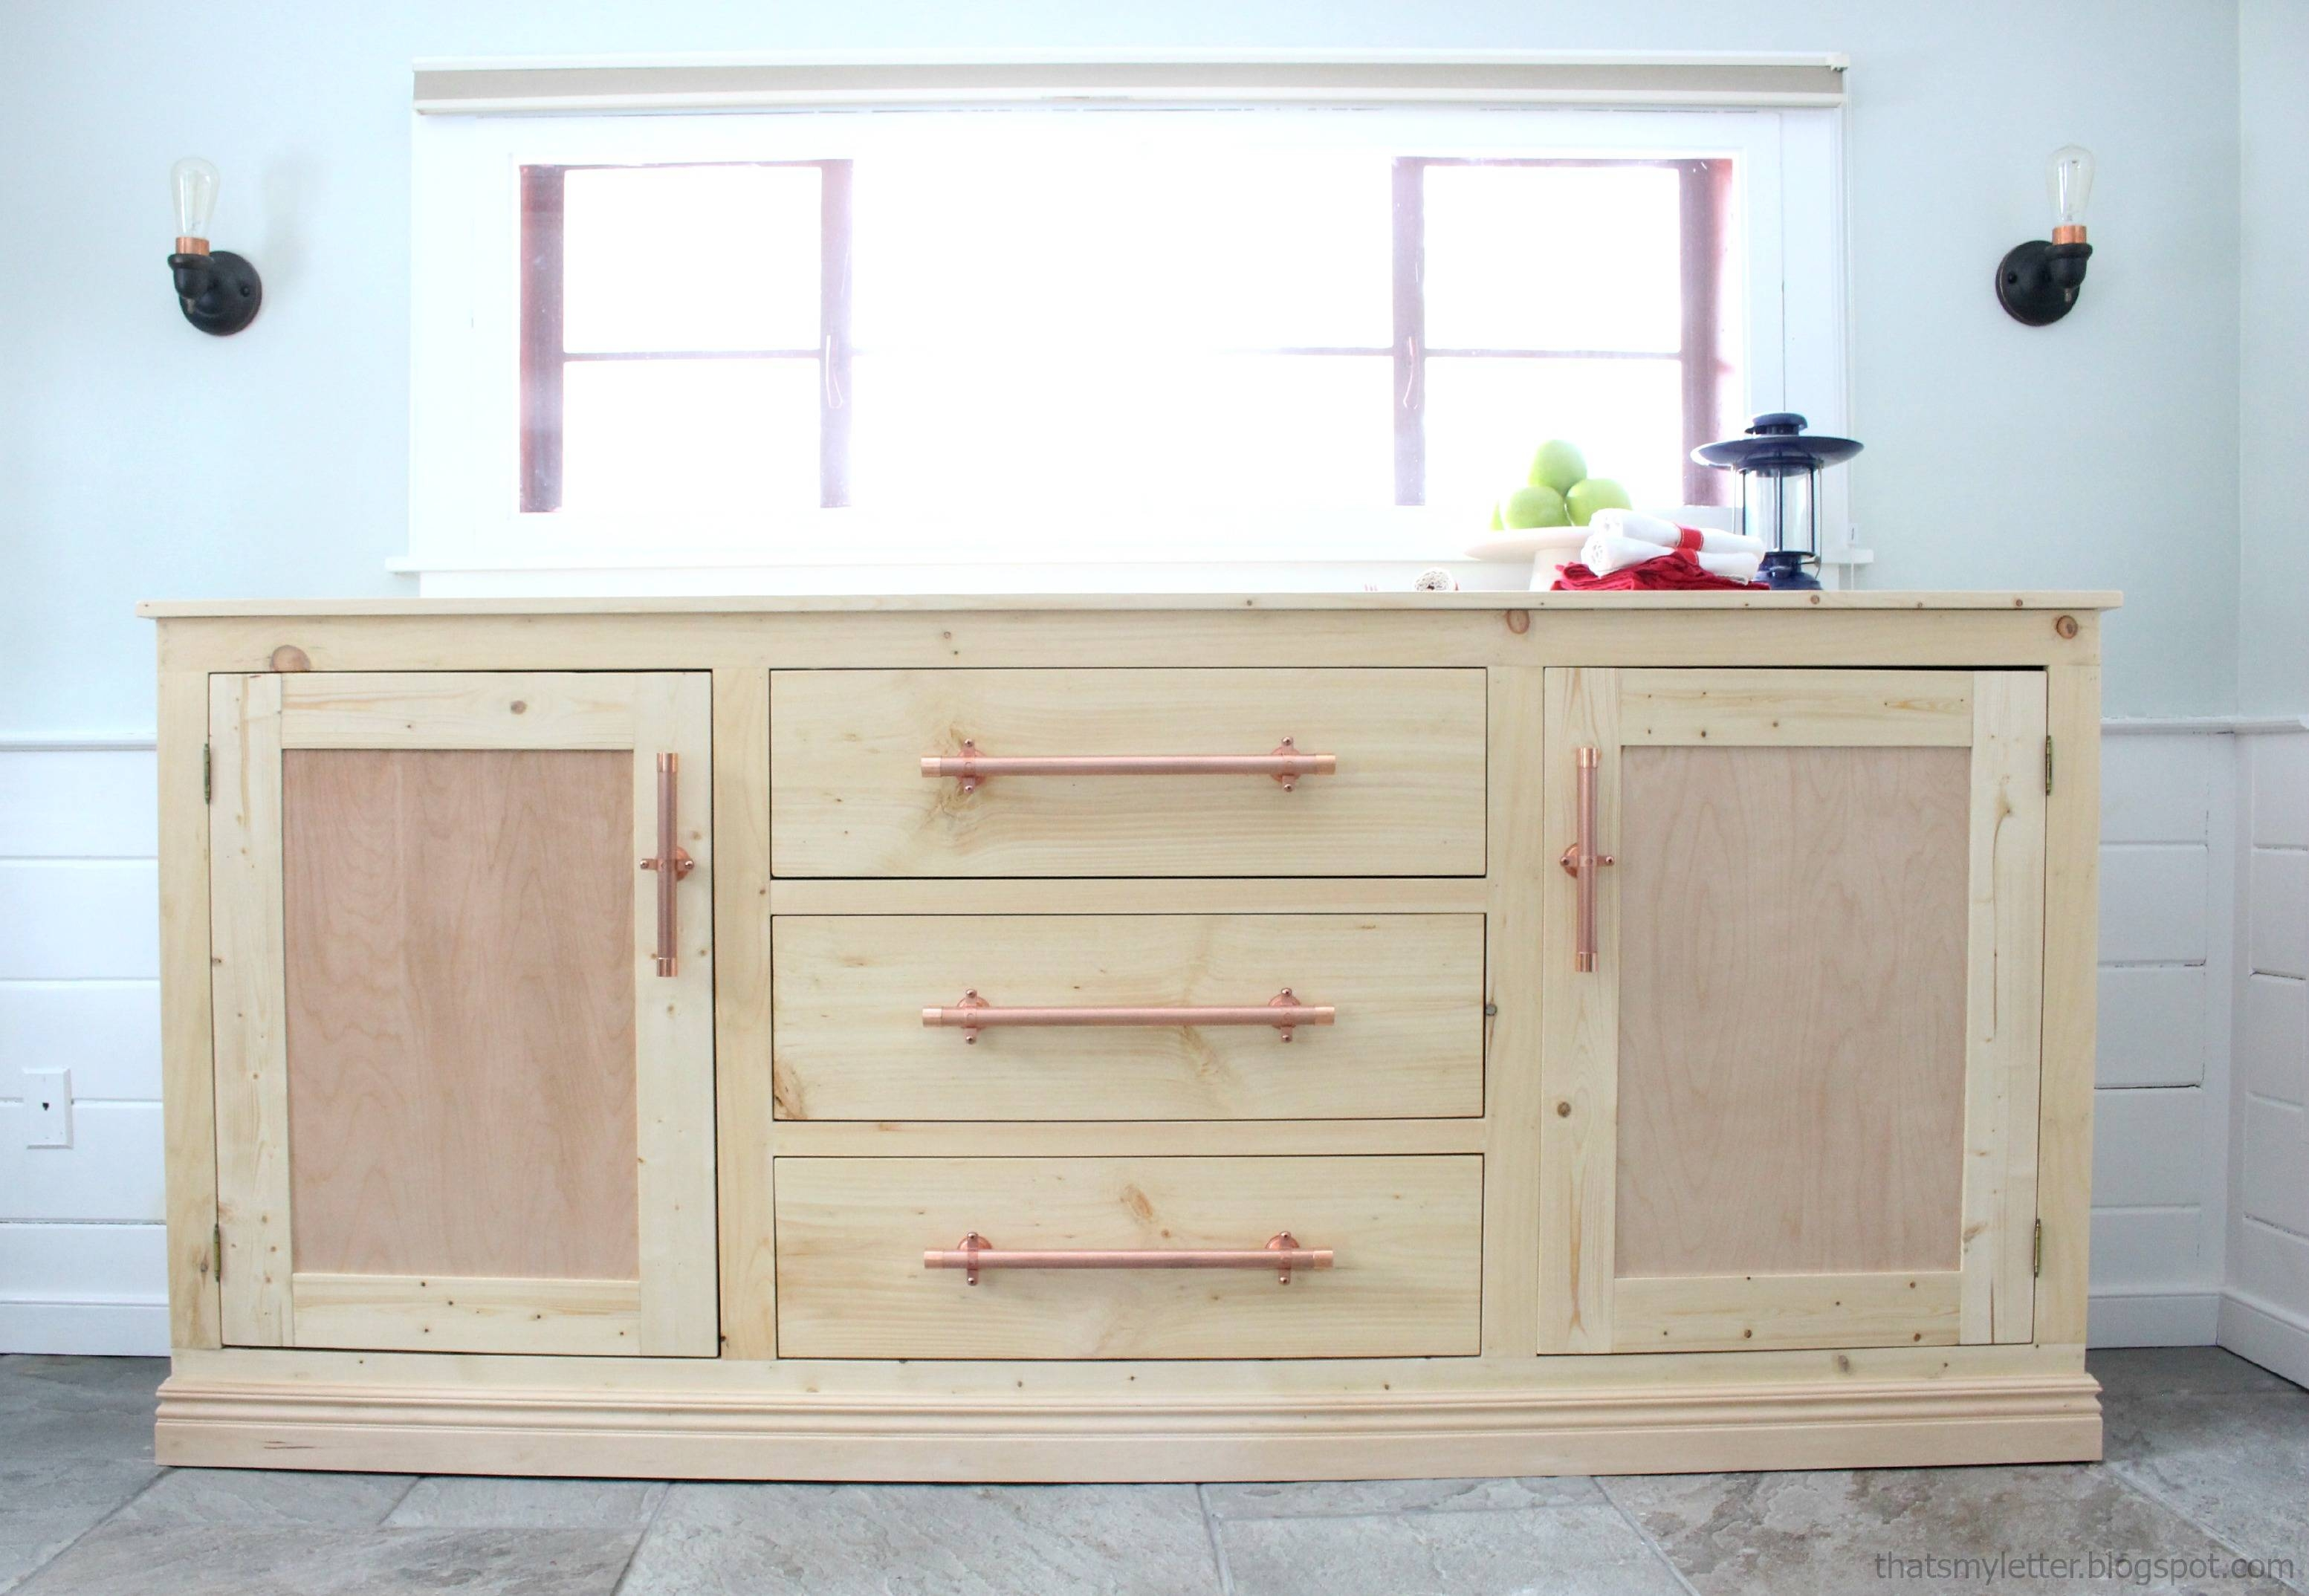 Ana White | Extra Long Buffet Cabinet - Diy Projects pertaining to 7 Foot Sideboards (Image 1 of 15)